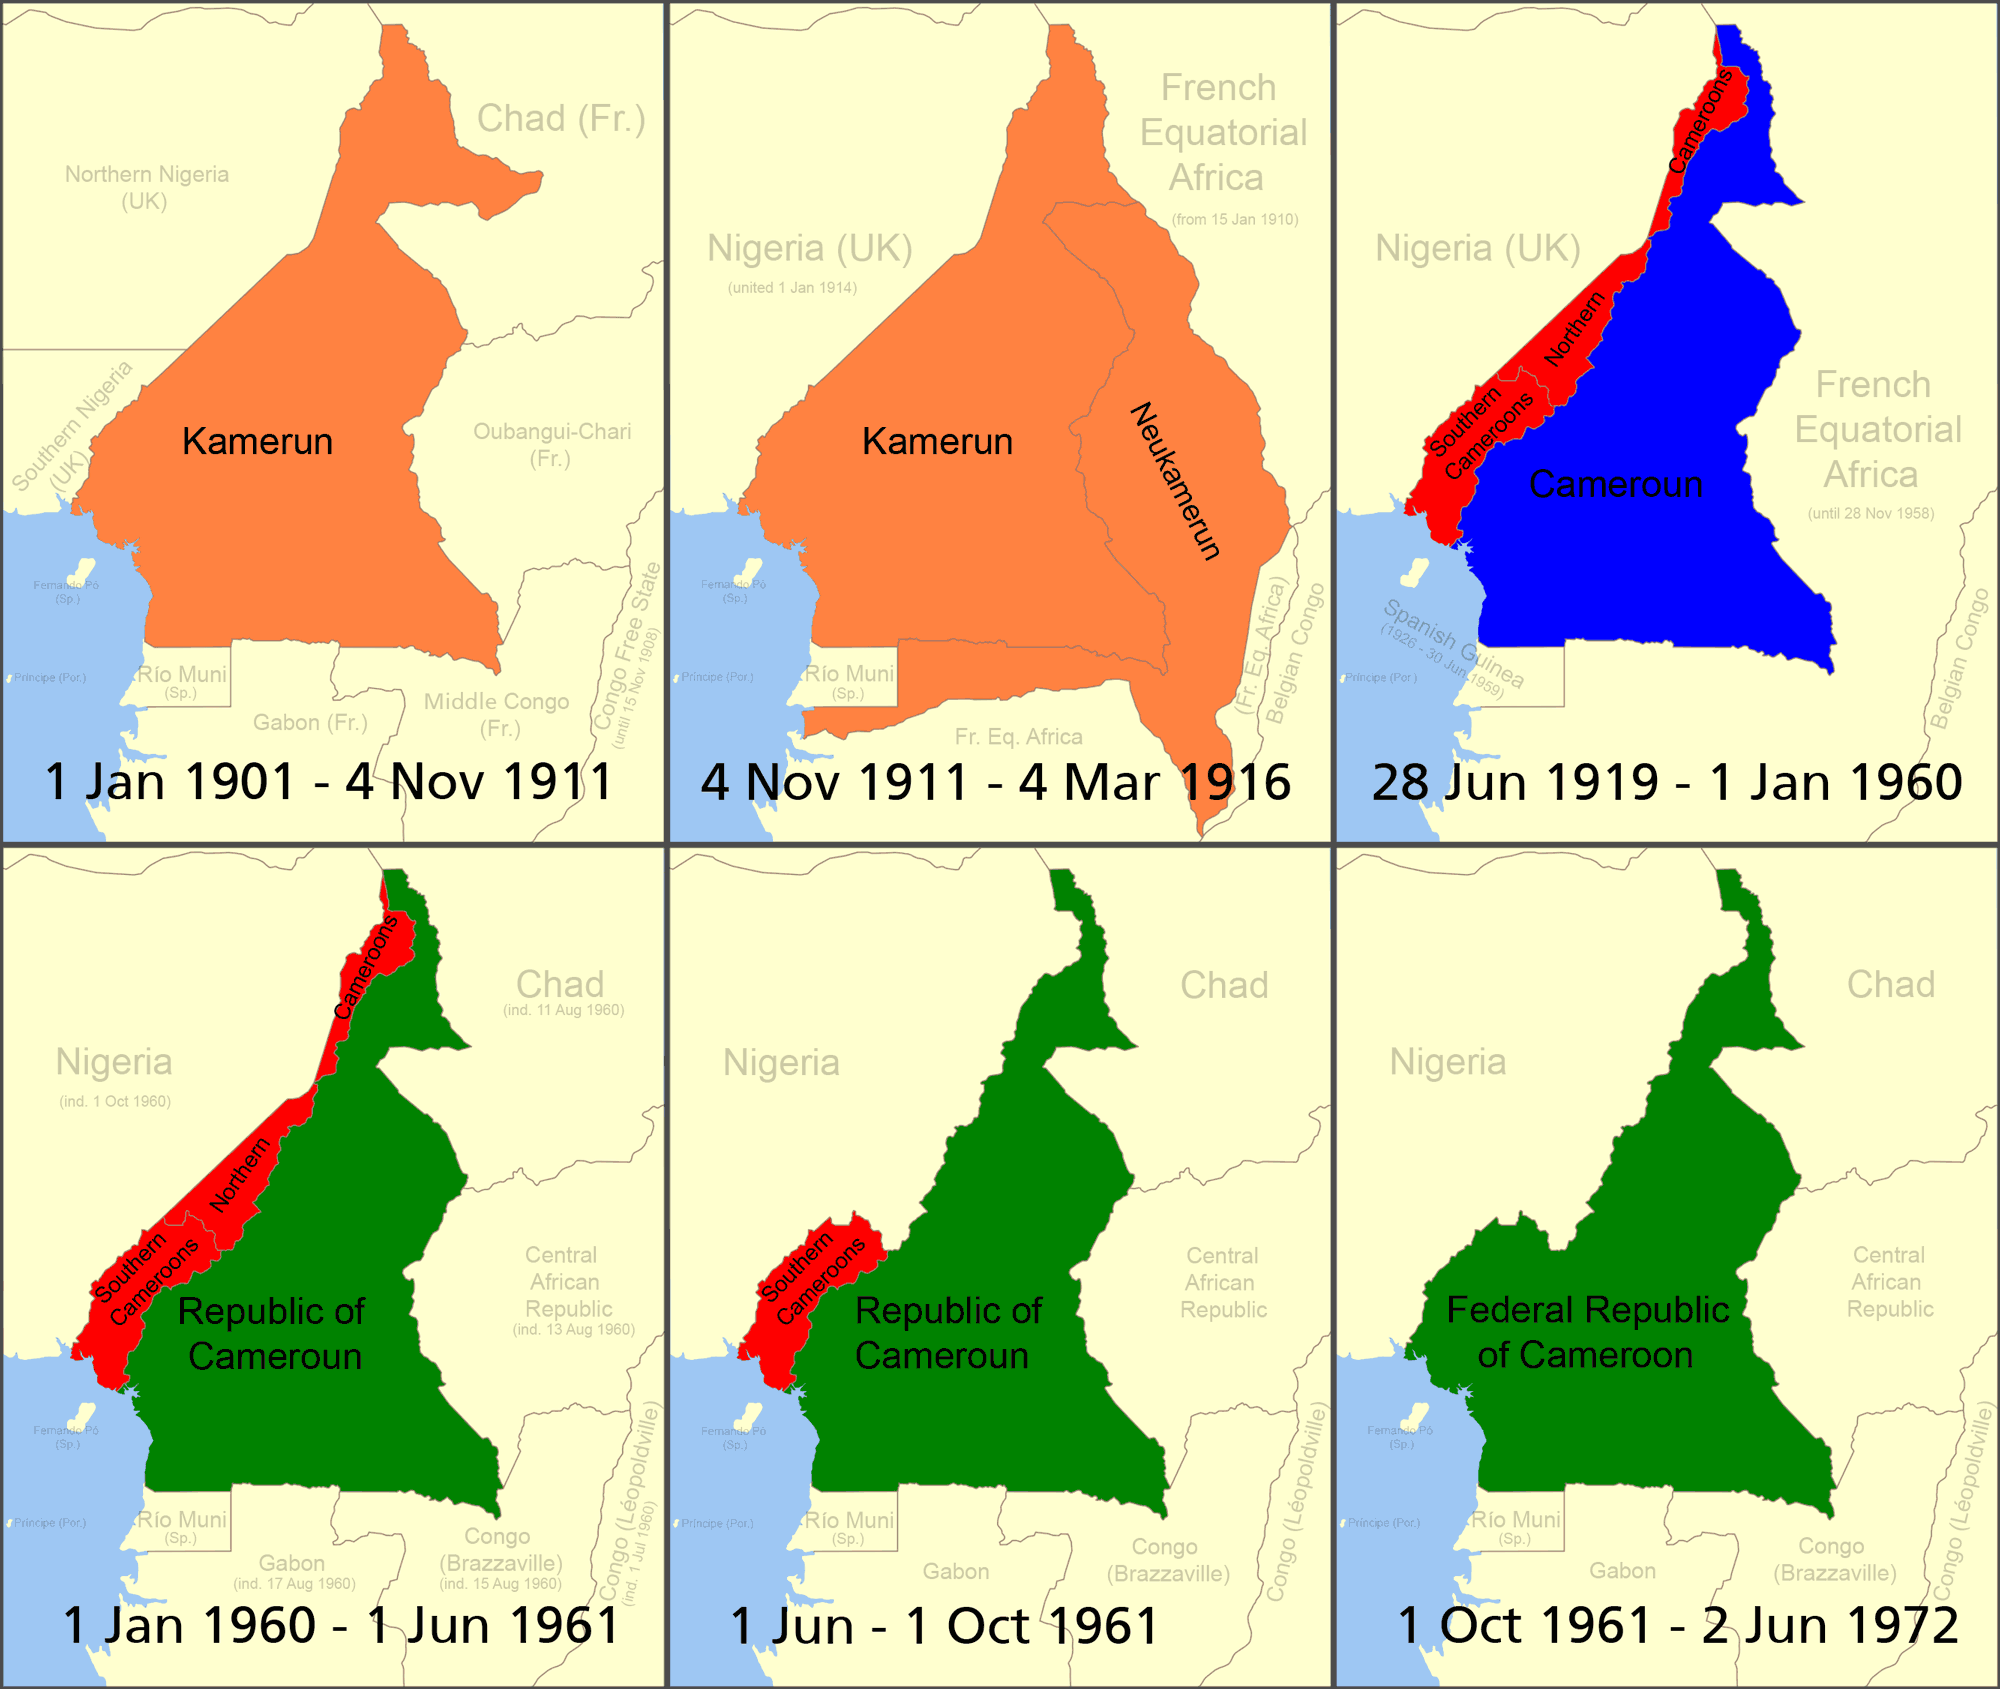 Cameroon's changing boundaries. Orange=German Kamerun, Red=British Cameroons, Blue=French Cameroun, Green=Republic of Cameroon. By Roke - Self-made based on public domain CIA map Image:Cameroon Map.jpg, original svg file located here., CC BY-SA 3.0, https://commons.wikimedia.org/w/index.php?curid=938868